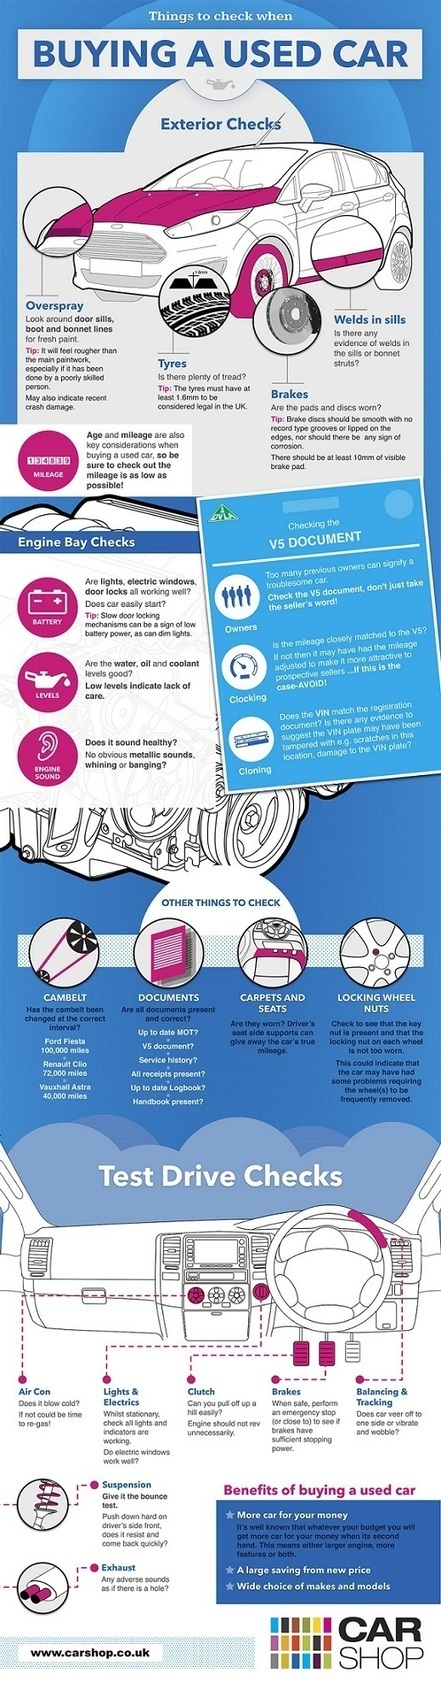 How to Buy the Right Used Car - Infographiclabs | Digital-News on Scoop.it today | Scoop.it